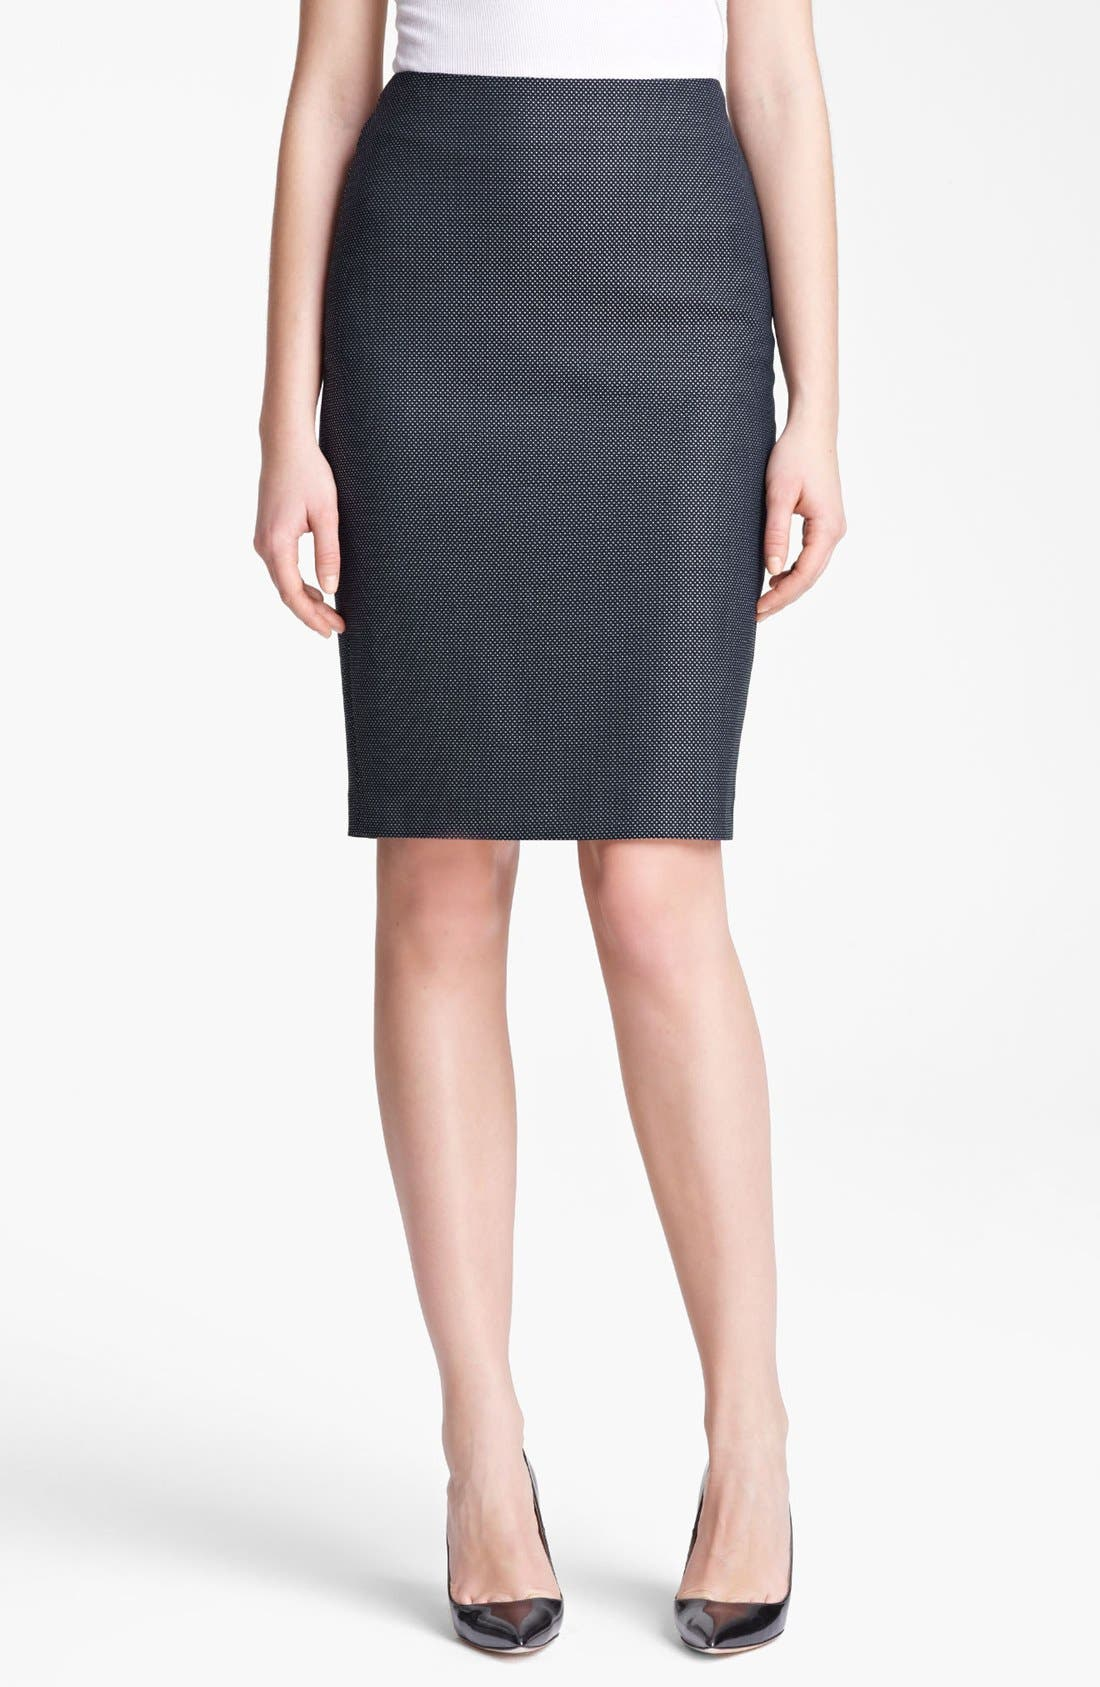 Alternate Image 1 Selected - Max Mara 'Svelto' Pin Dot Skirt